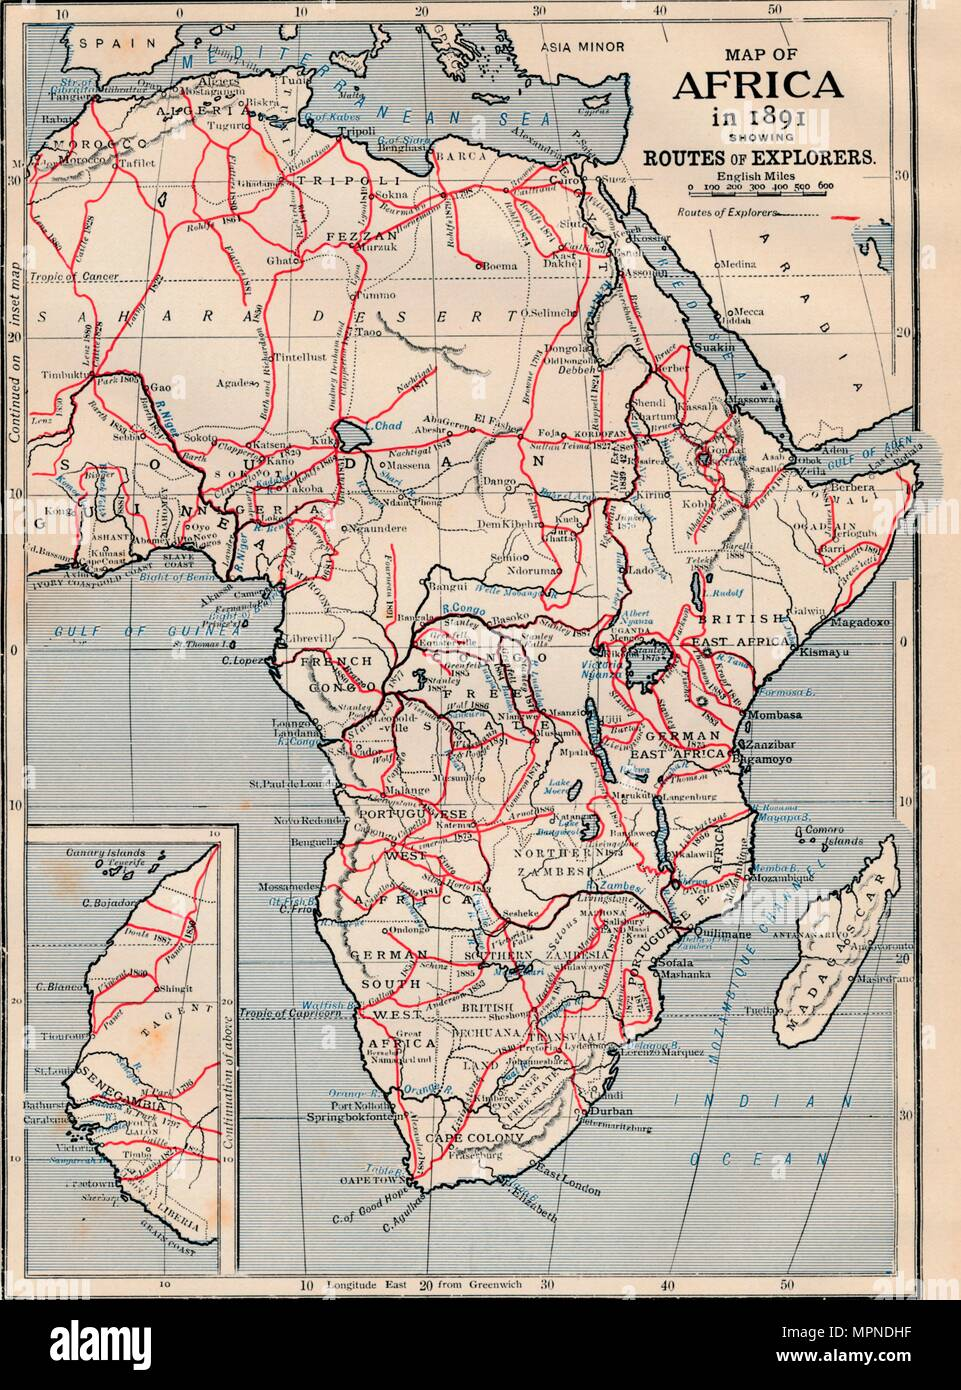 'Map of Africa in 1891 showing Routes of Explorers'. Artist: Unknown. - Stock Image